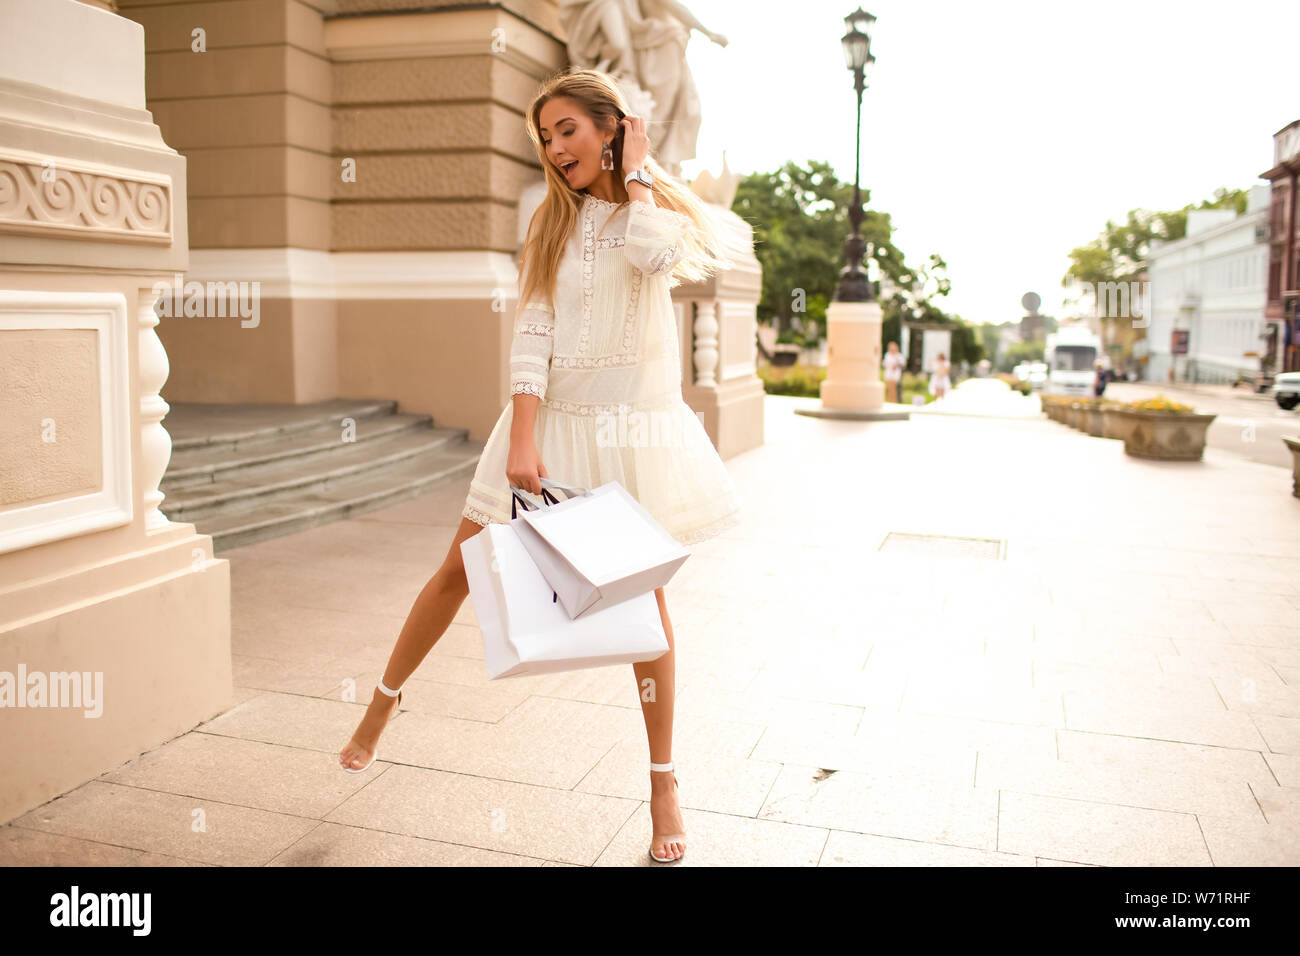 Wonderful woman in a light tender summer collection dress. High heel shoes, amazing slim body. Holding bags with brand new clothes. Long blonde hair l Stock Photo